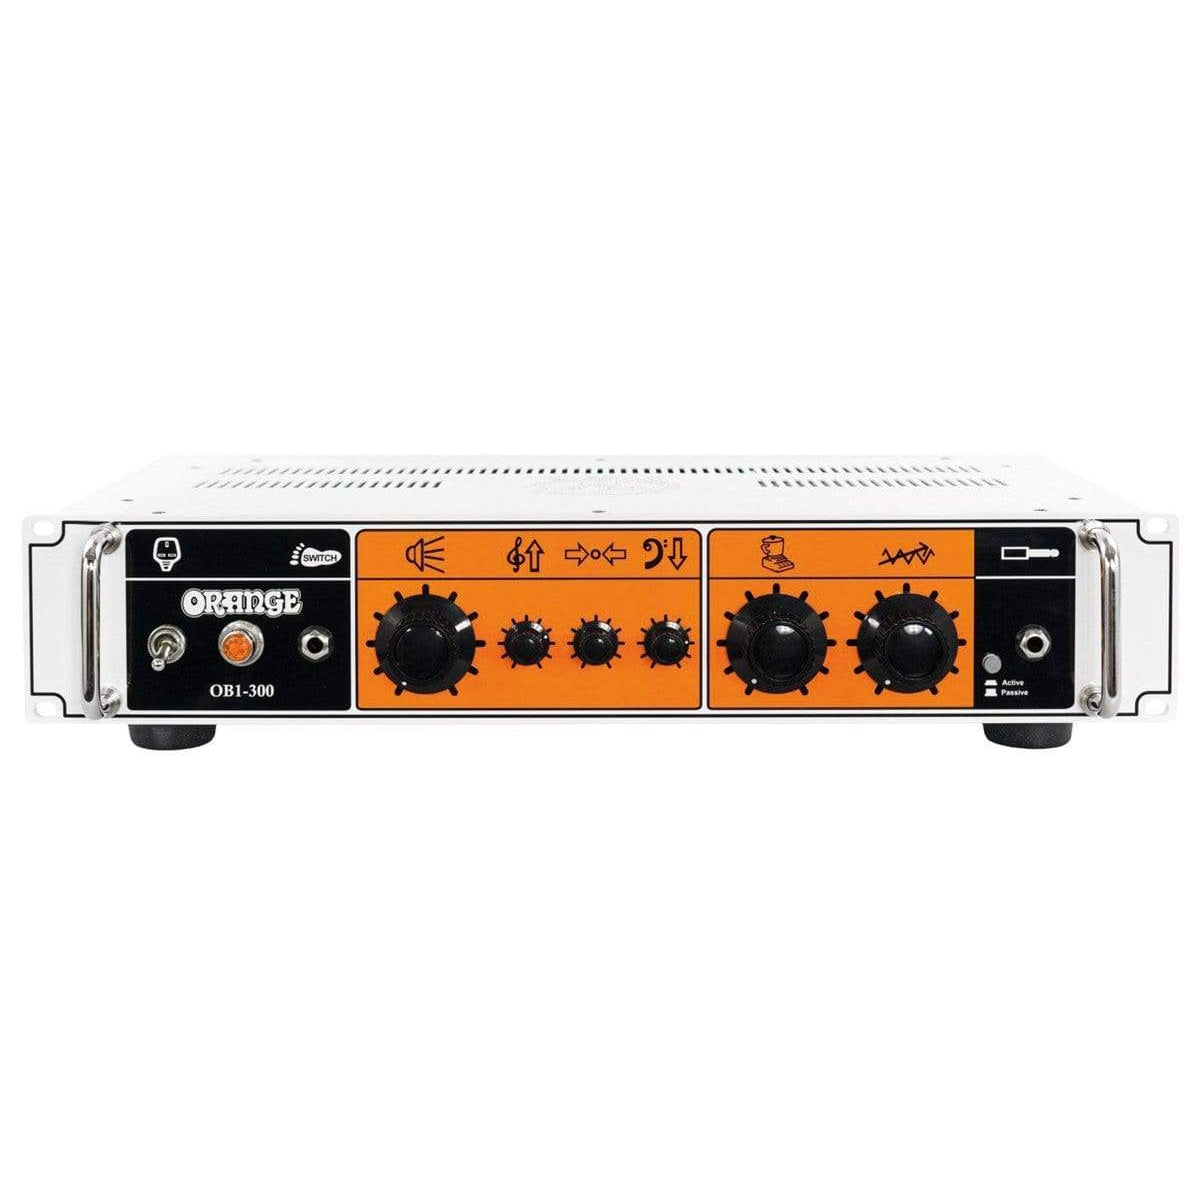 Orange Amplifier Head Orange OB1 300 Bass Guitar Amplifier Head